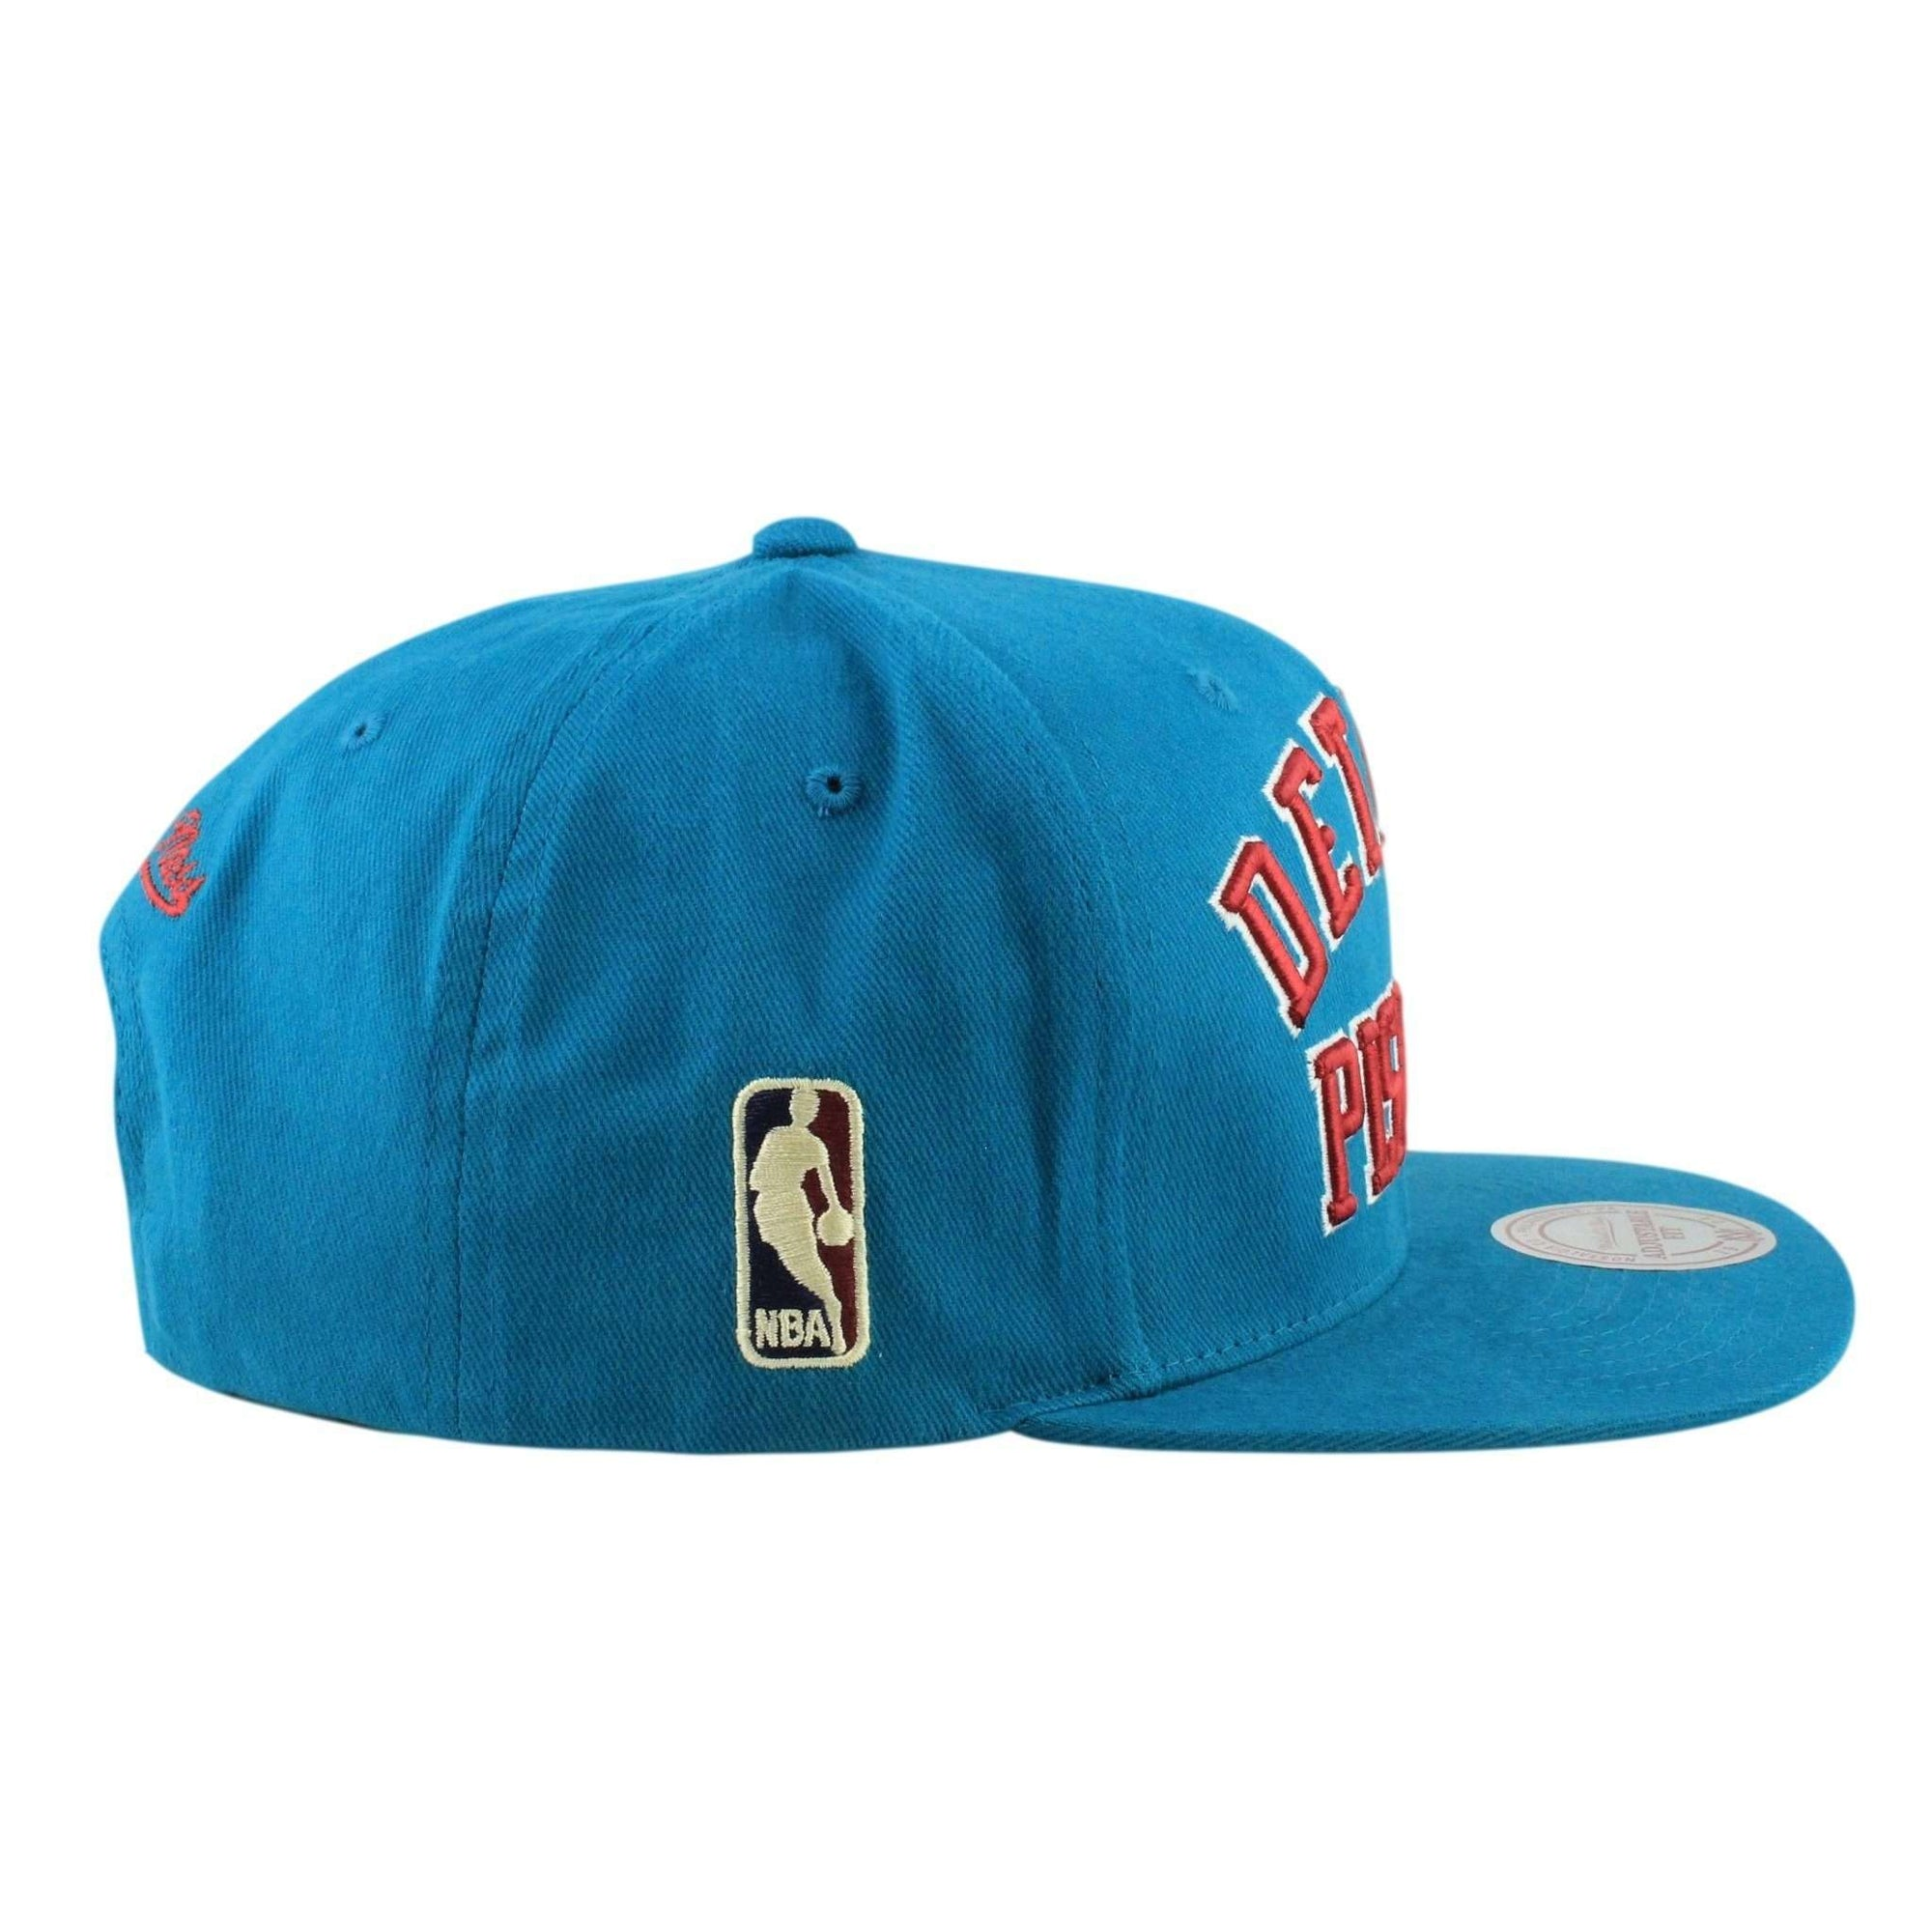 e0cddbee81603 Mitchell and Ness Detroit Pistons HWC Wordmark Teal Teal Snapback